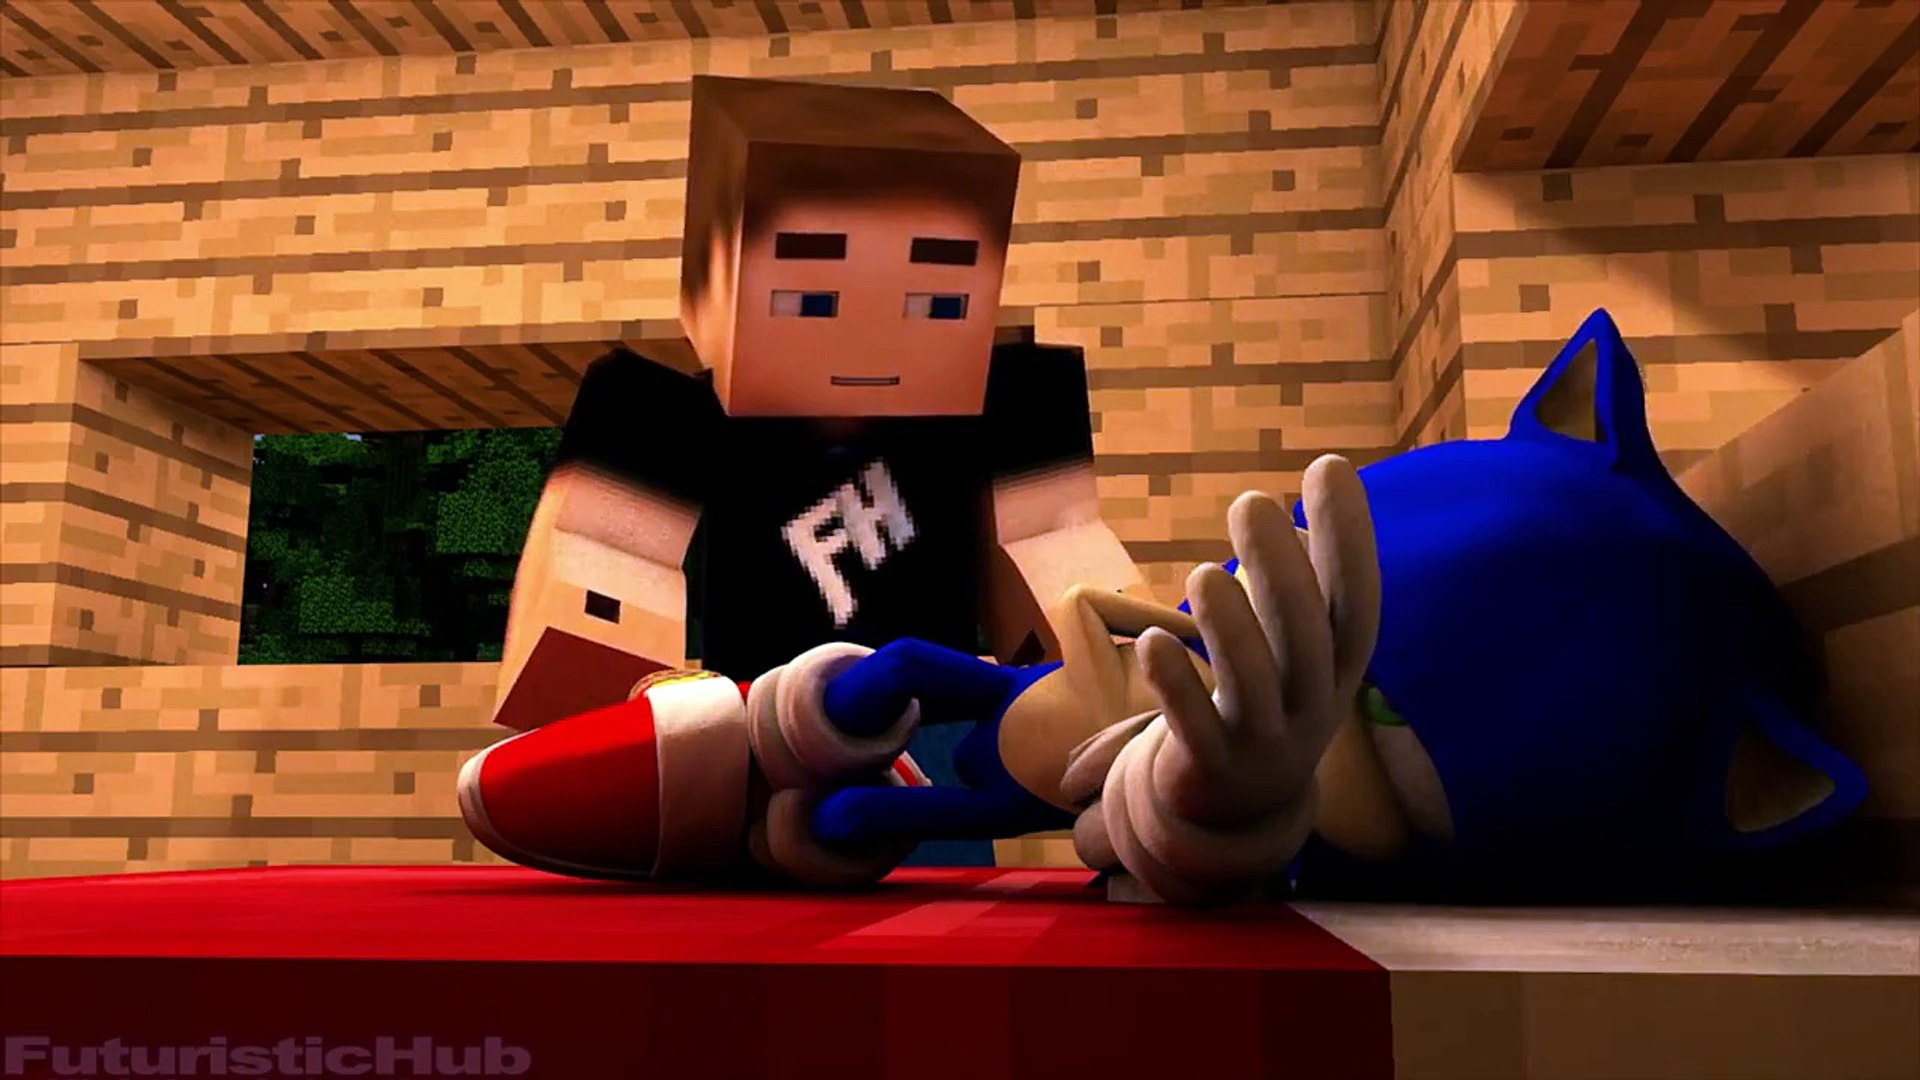 Sonic In Minecraft 3 3d Minecraft Animation Dailymotion Video